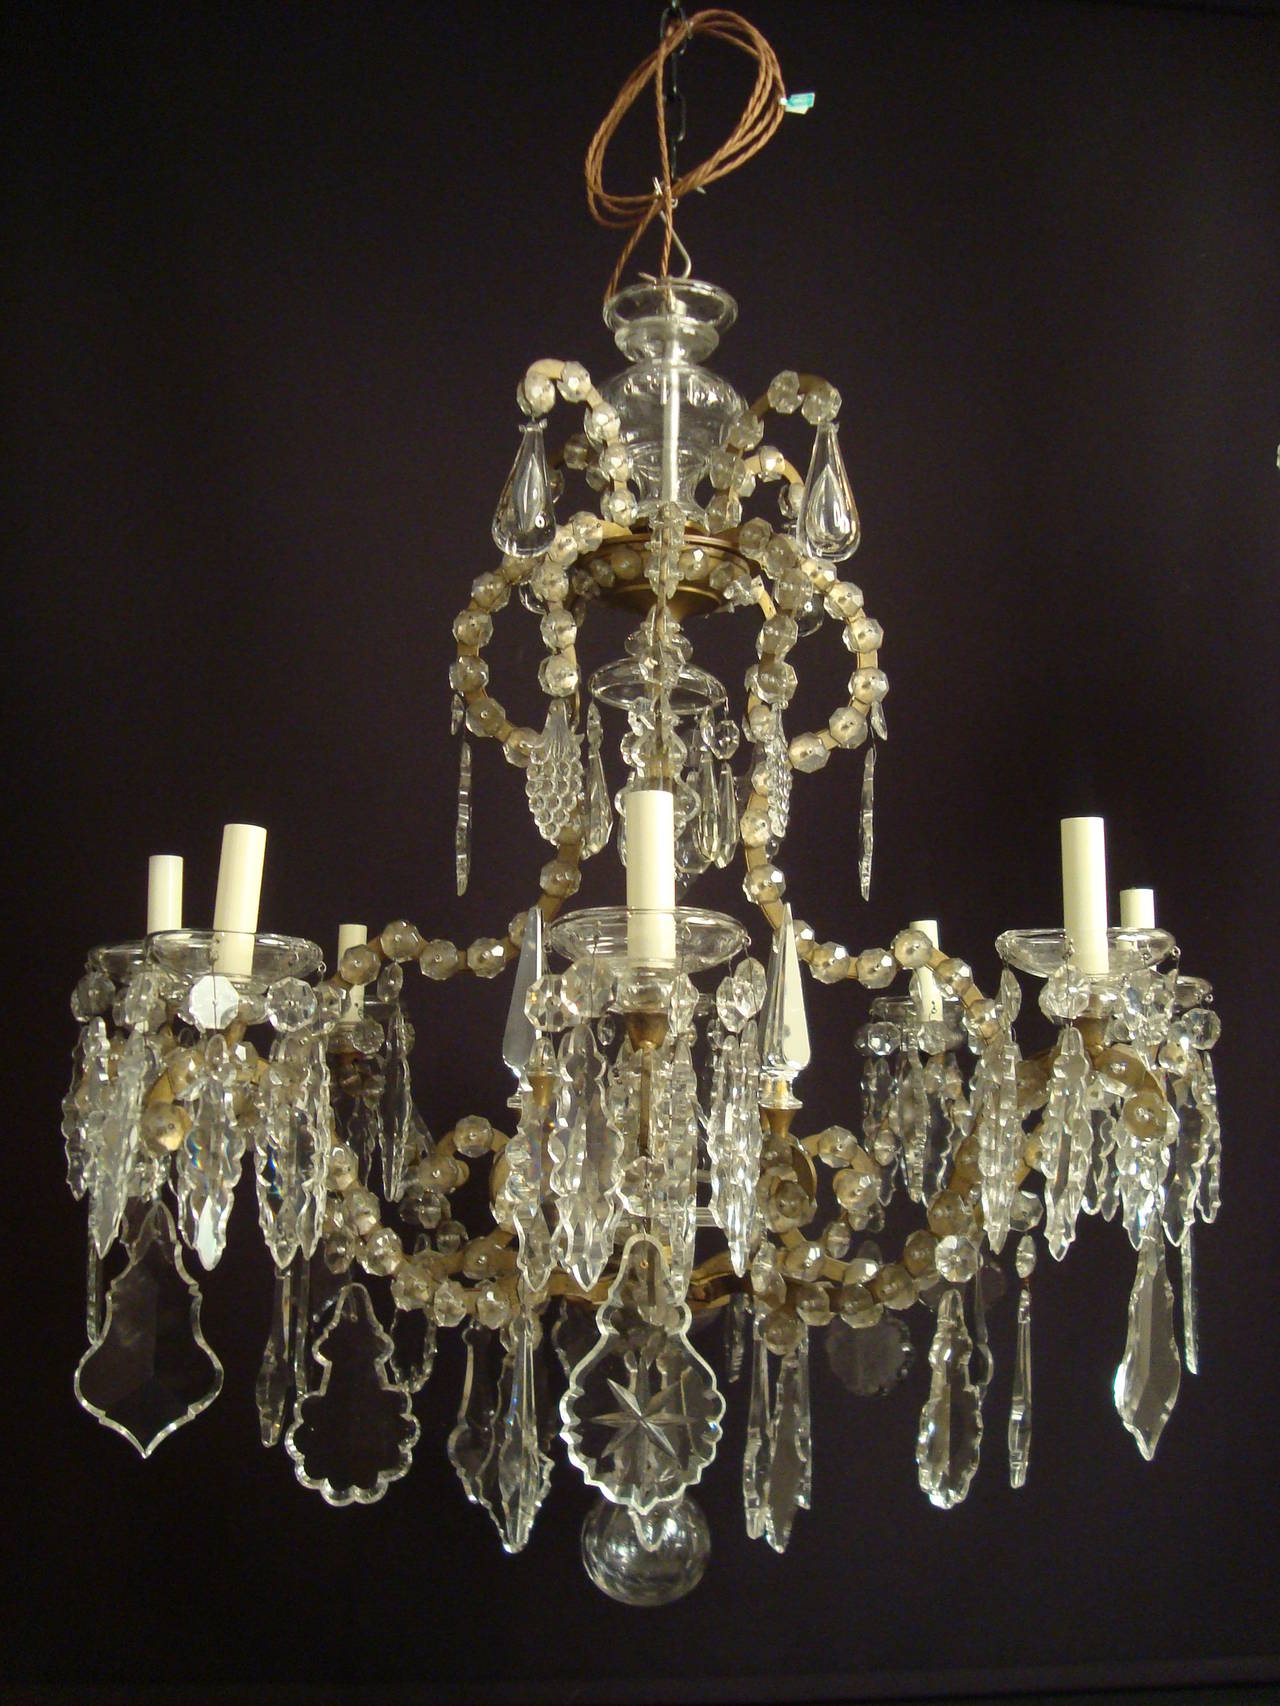 Most Unusual Wrought Iron Glass and Crystal Italian